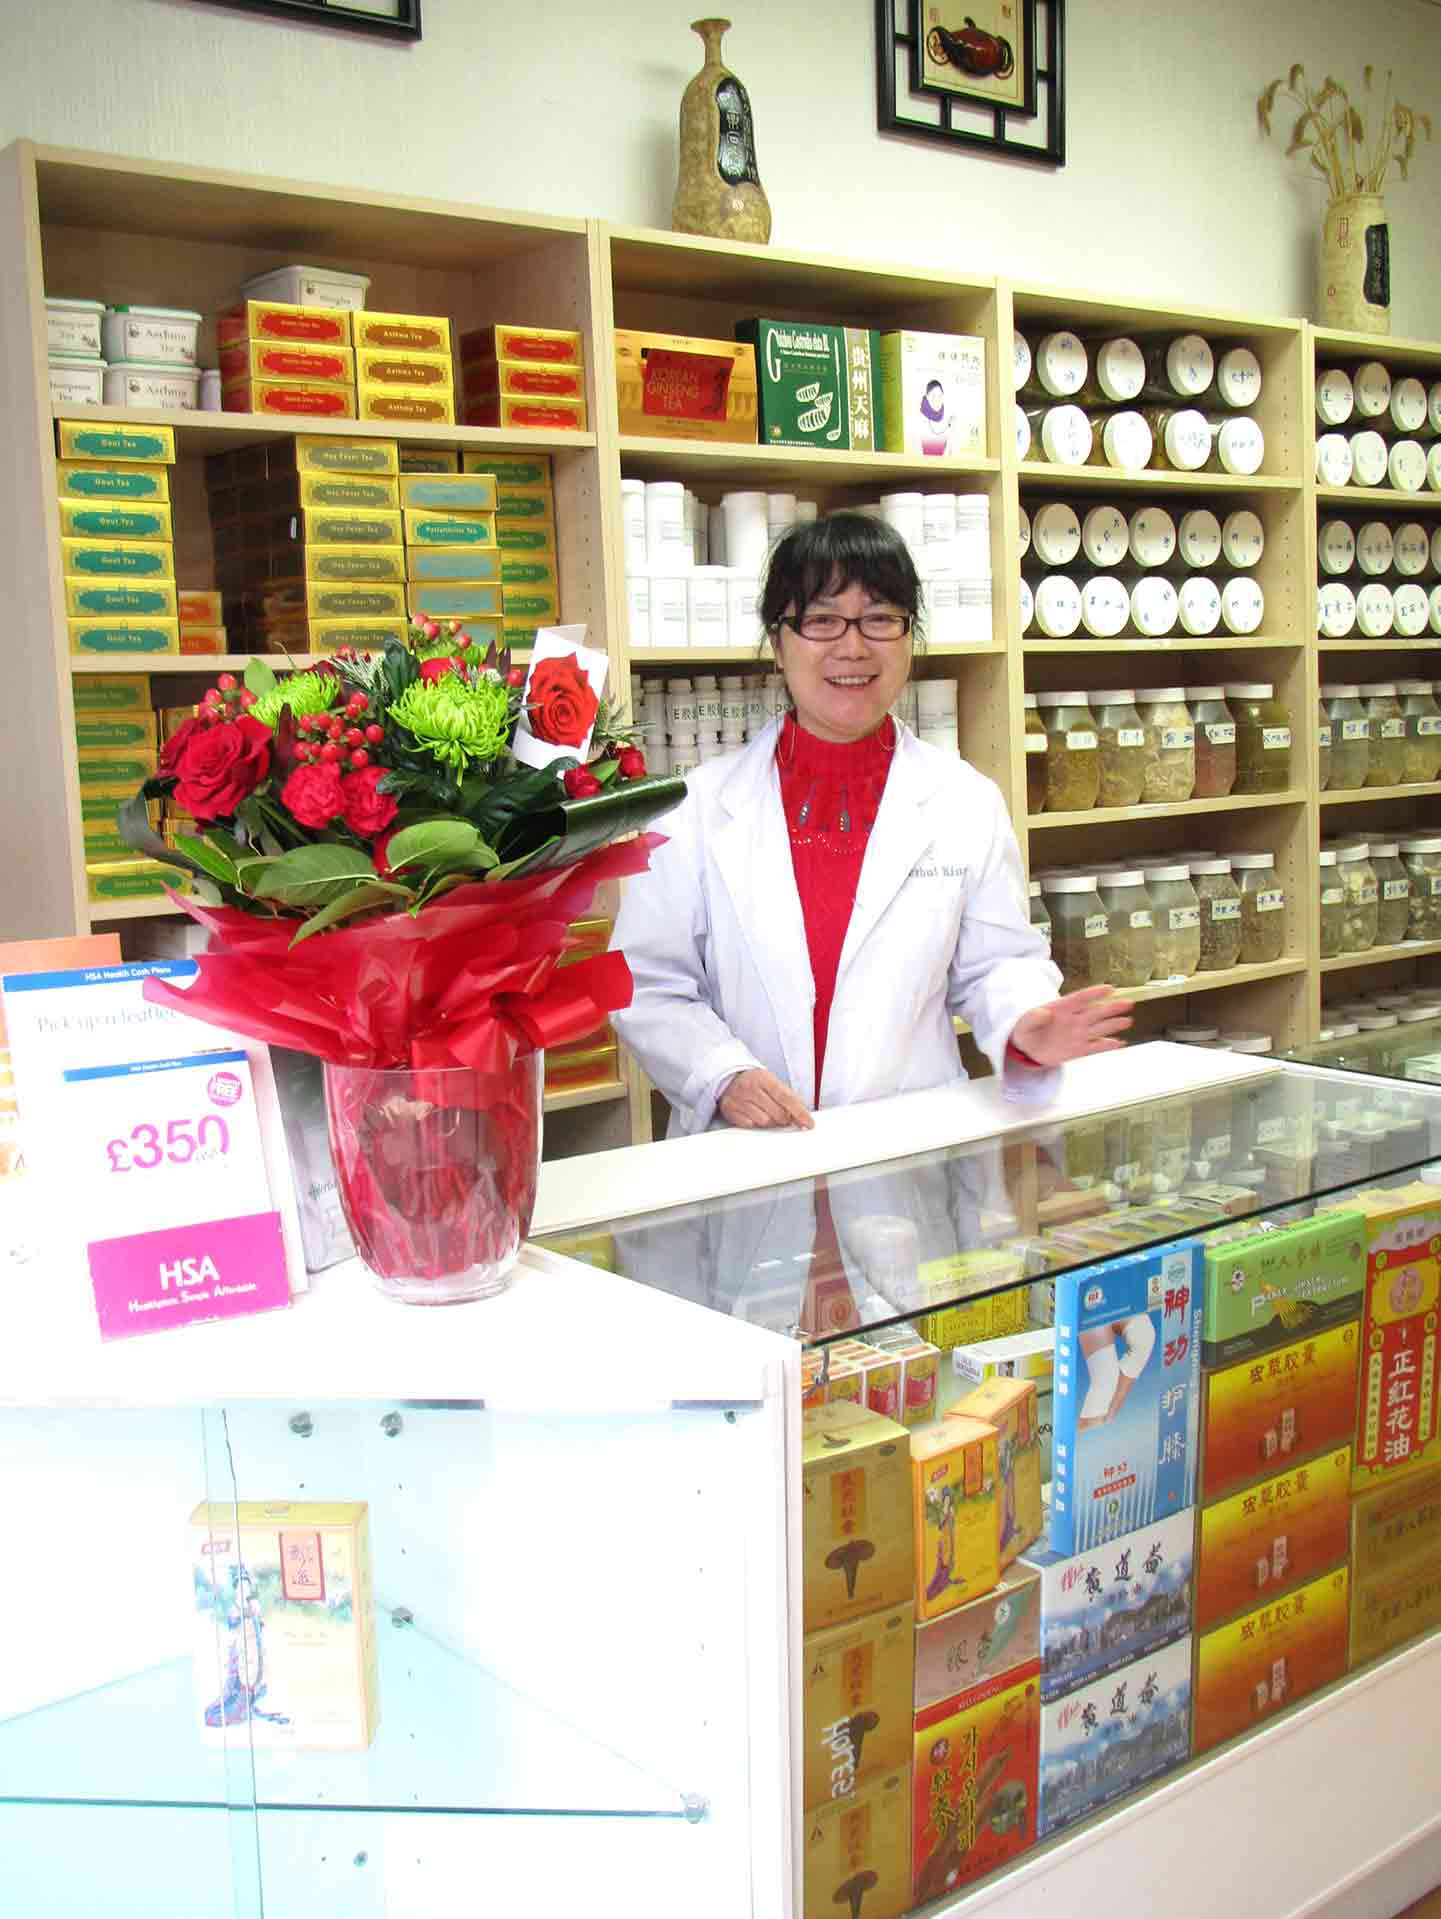 Yilan At The Herbal King Shop Counter In Sutton, Surrey